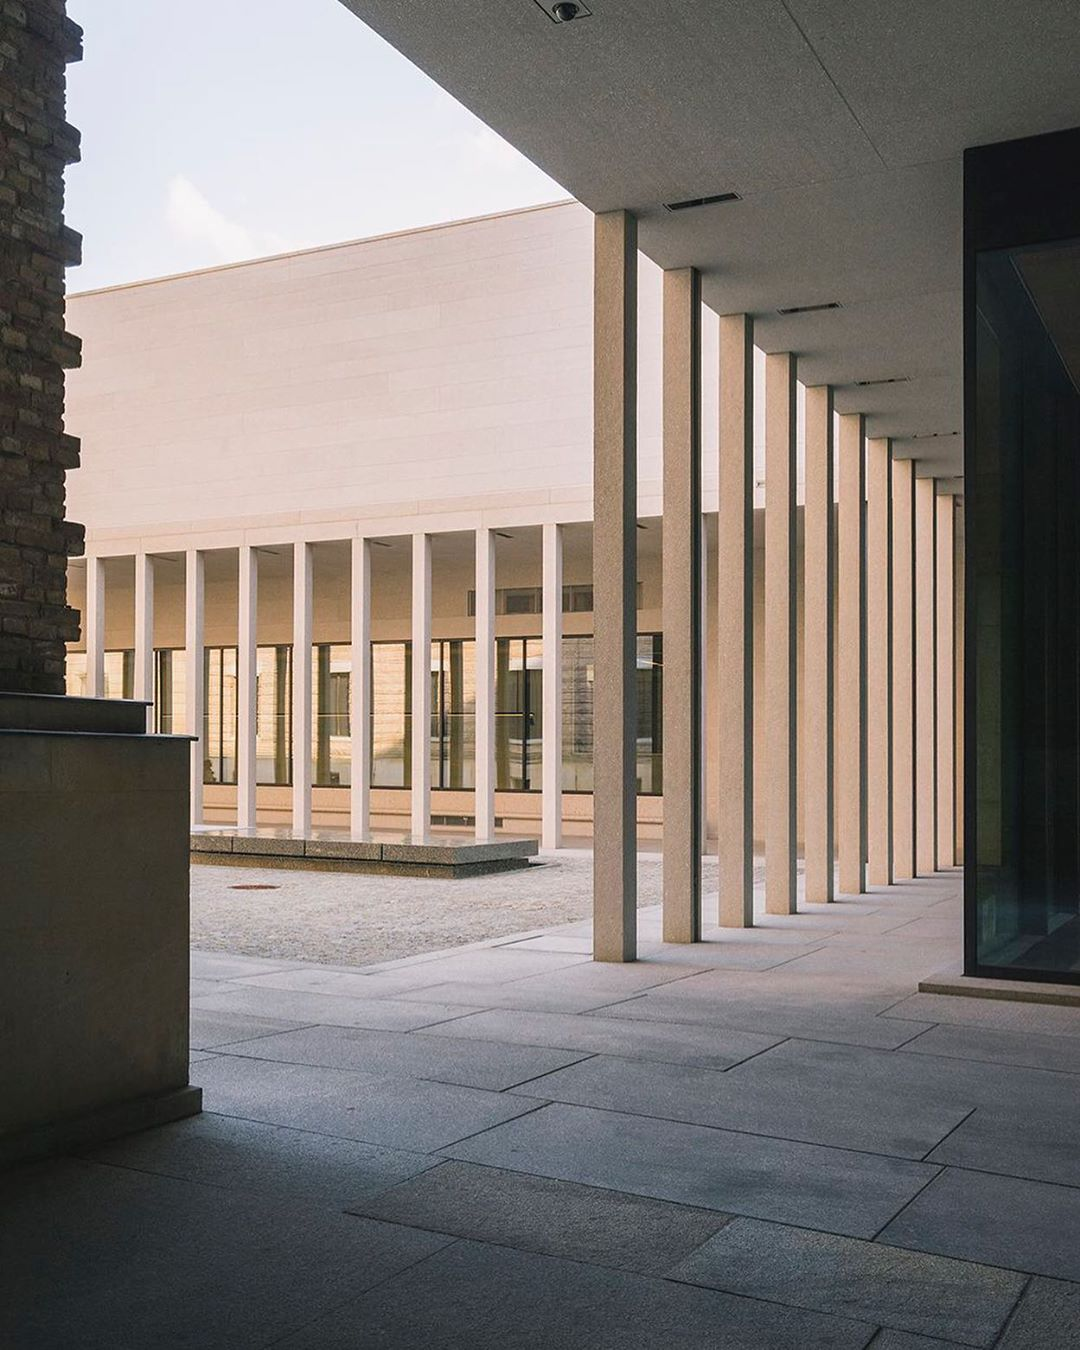 Global Spaces On Instagram James Simon Gallery By David Chipperfield Architects Architecture David Chipperfield Architects Architecture Details